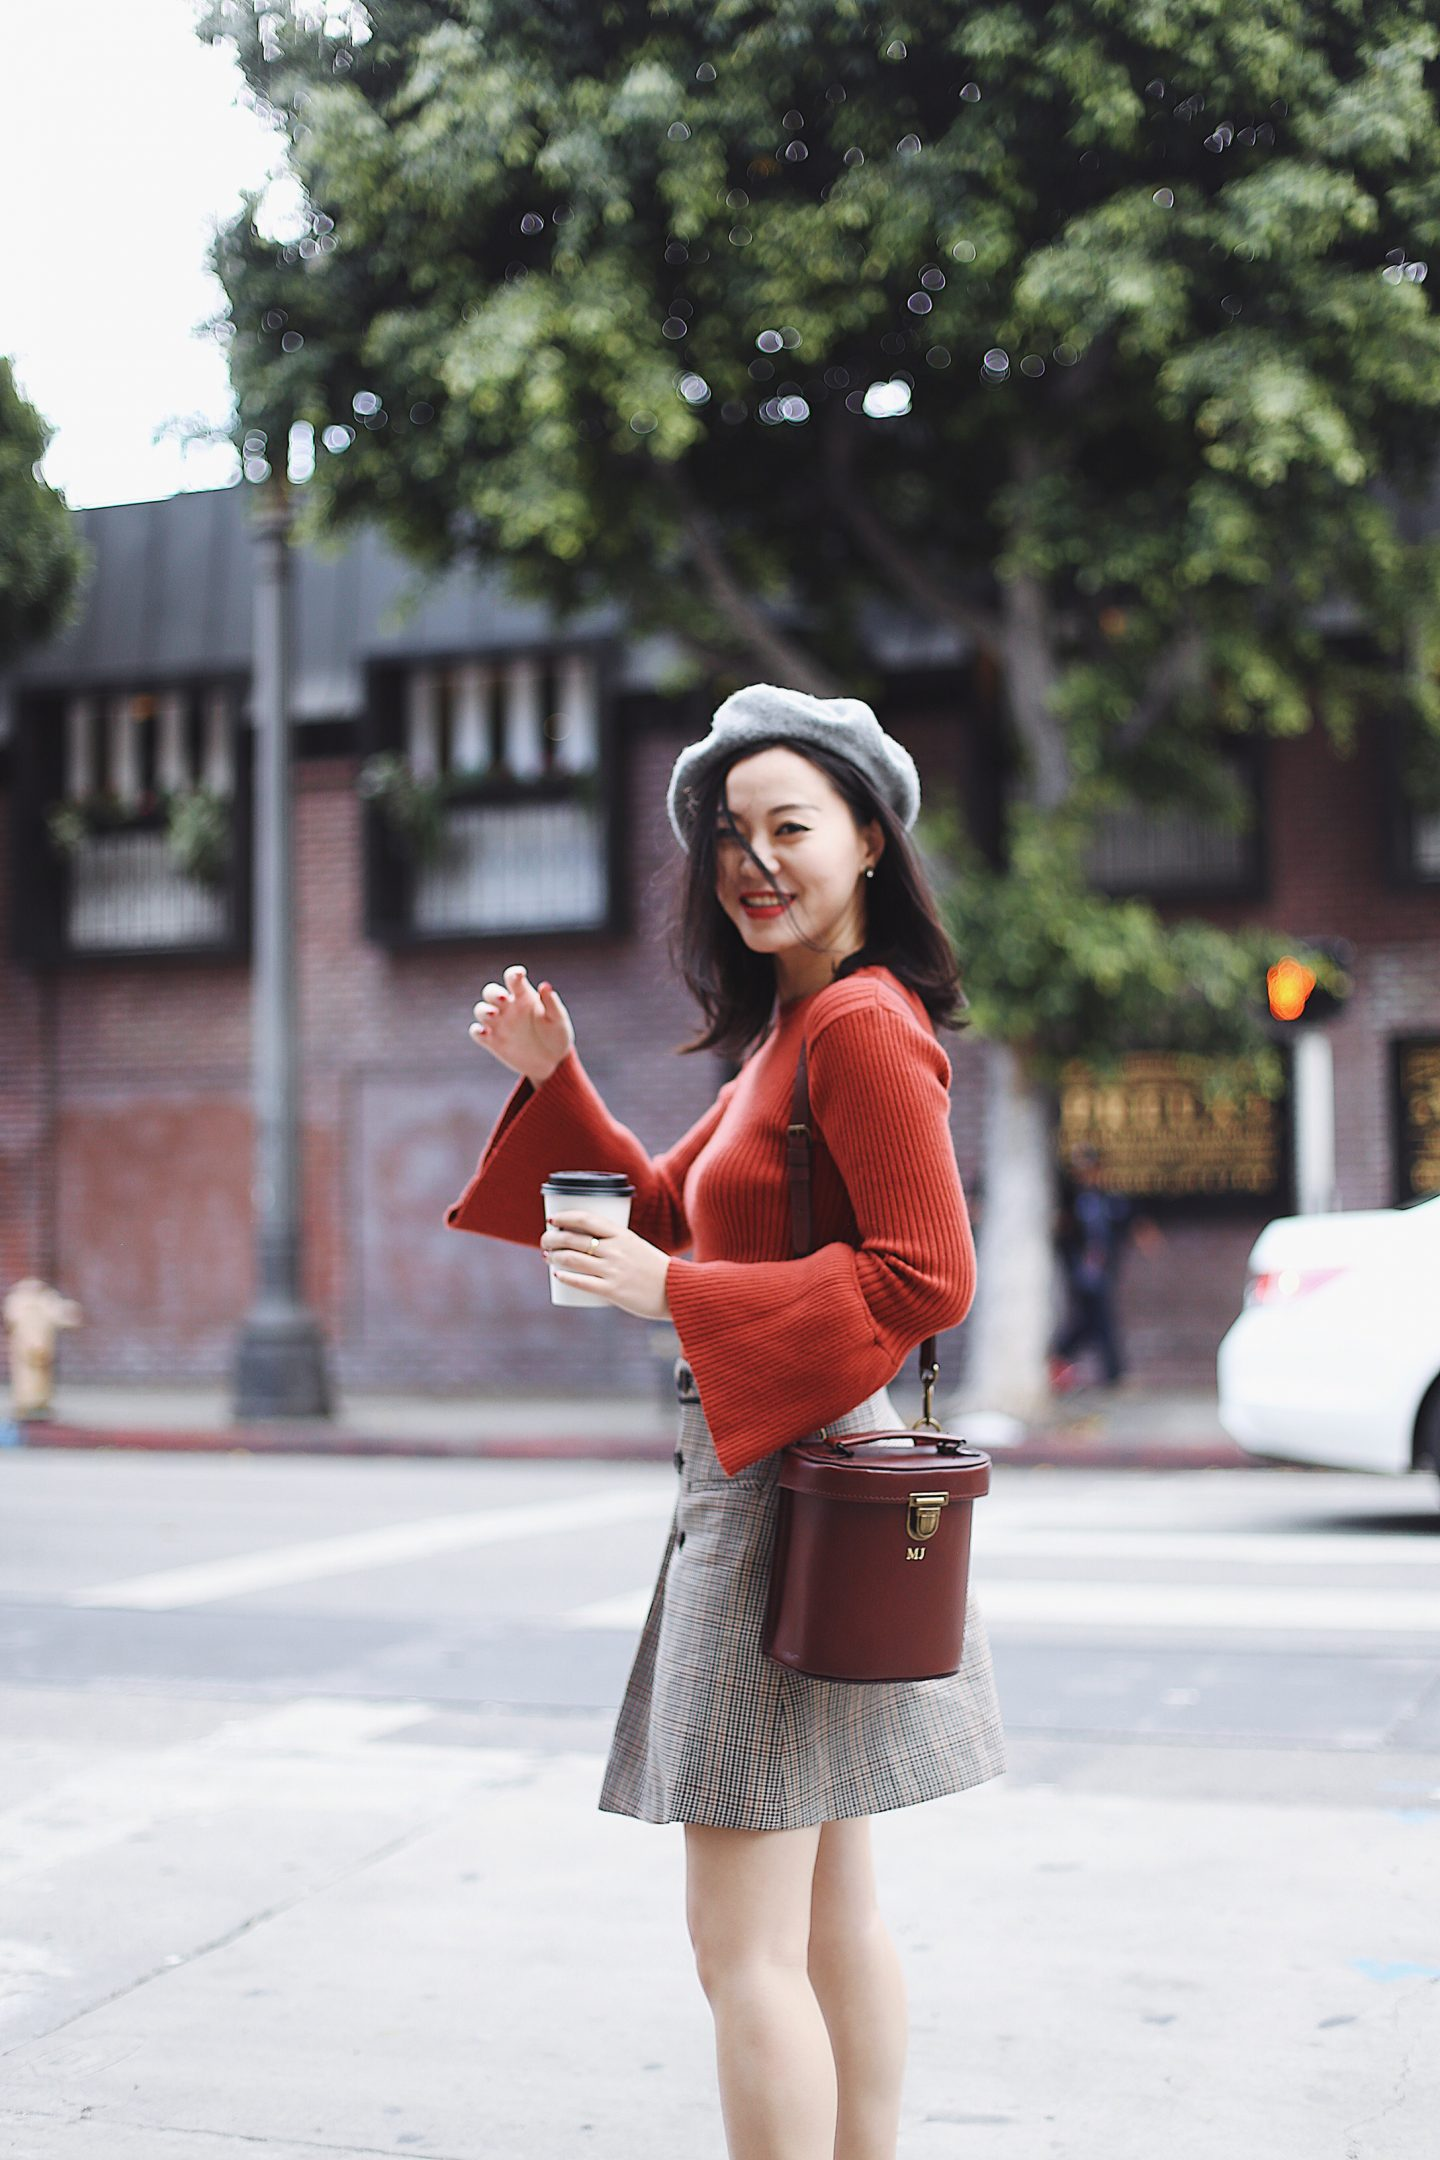 1 piece 2 ways - pairing checkered skirt with beret brown bag and bell sleeved red top